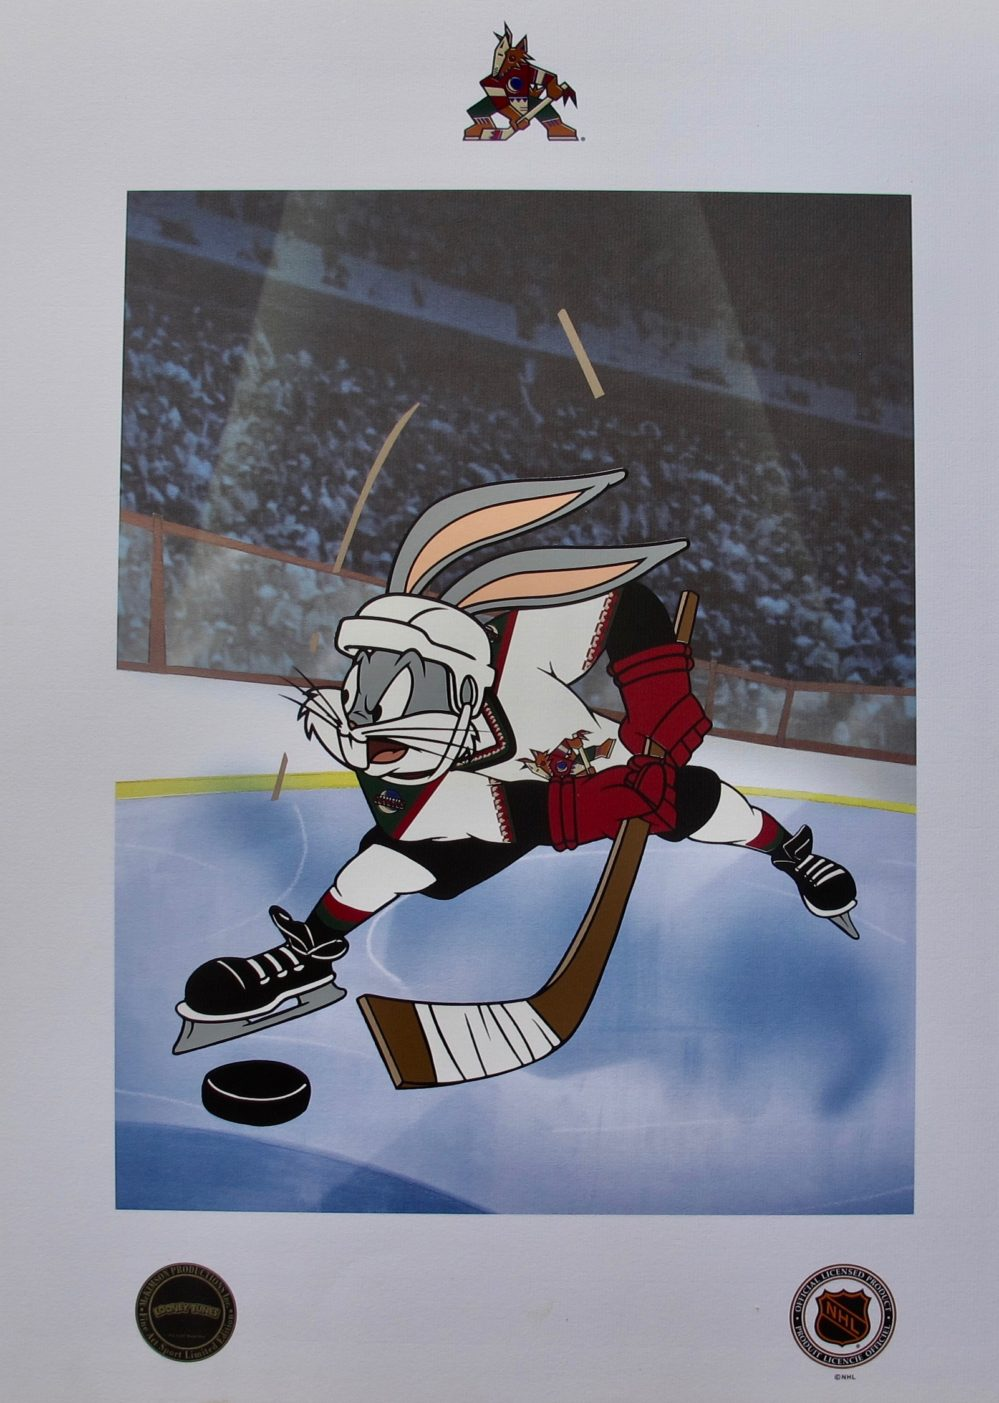 BUGS BUNNY ICE HOCKEY ARIZONA COYOTES Warner Bros Limited Edition Lithograph